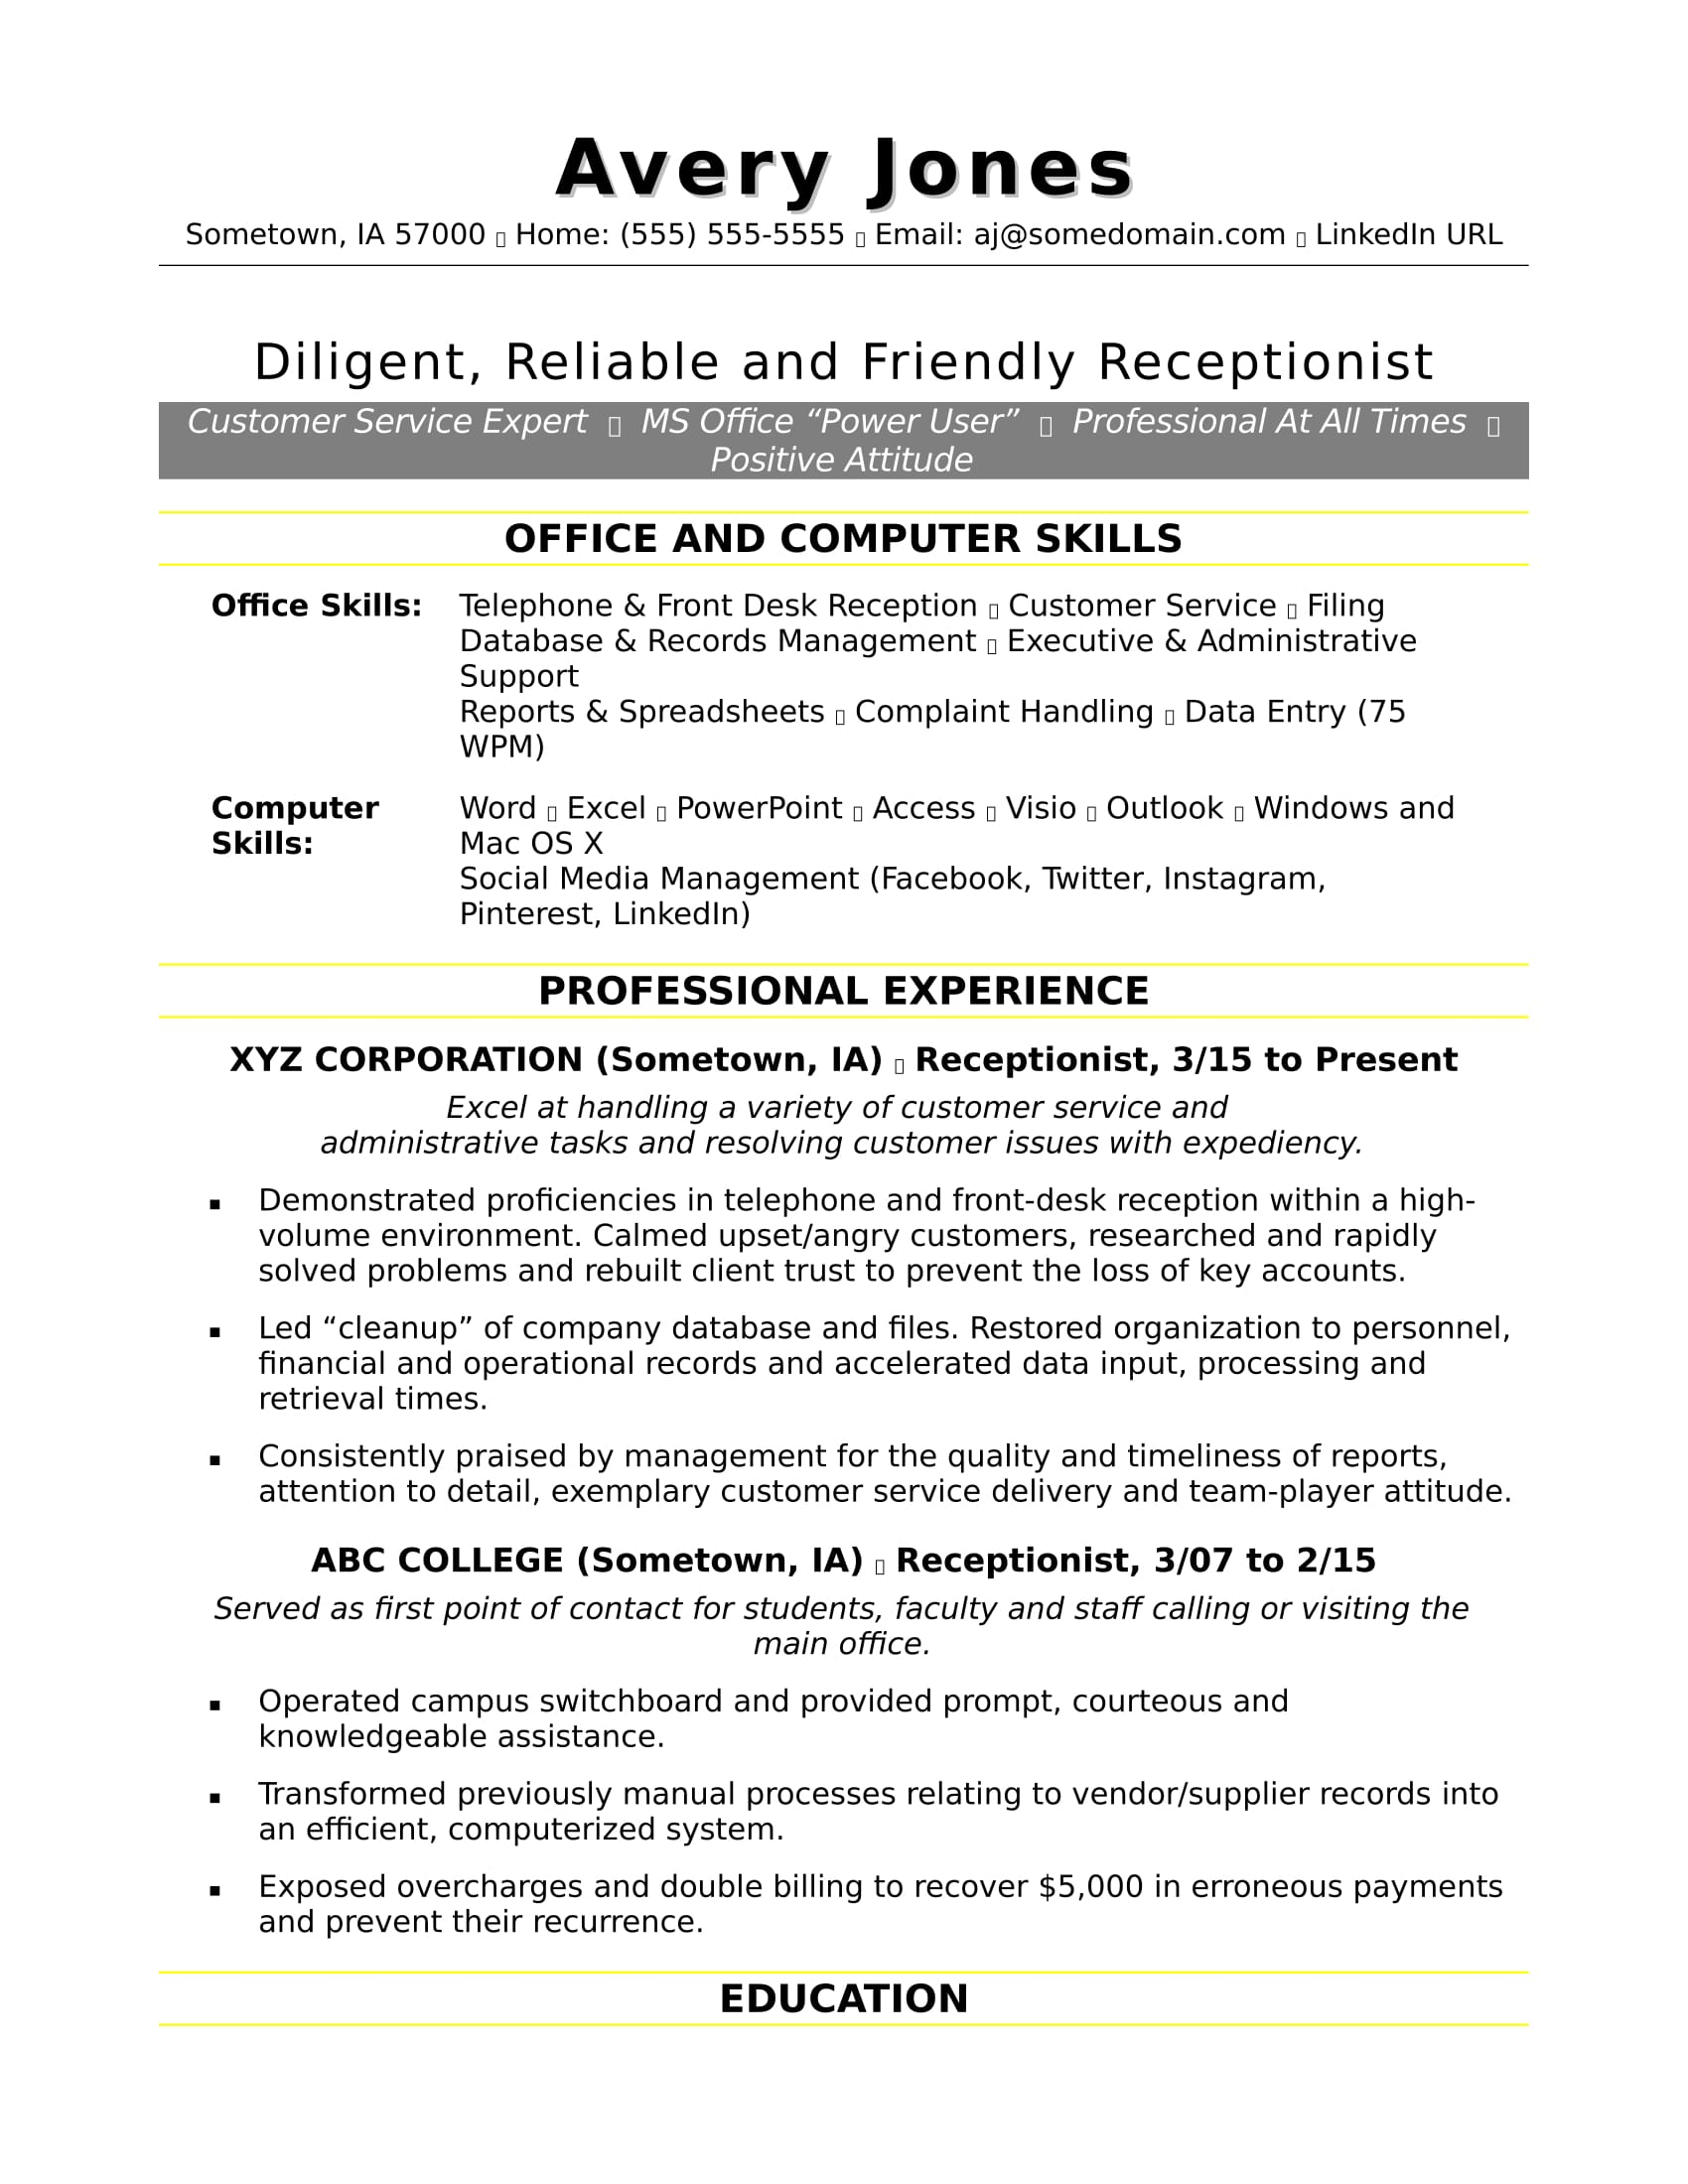 receptionist resume sample monster common computer skills for funeral home administrative Resume Common Computer Skills For Resume